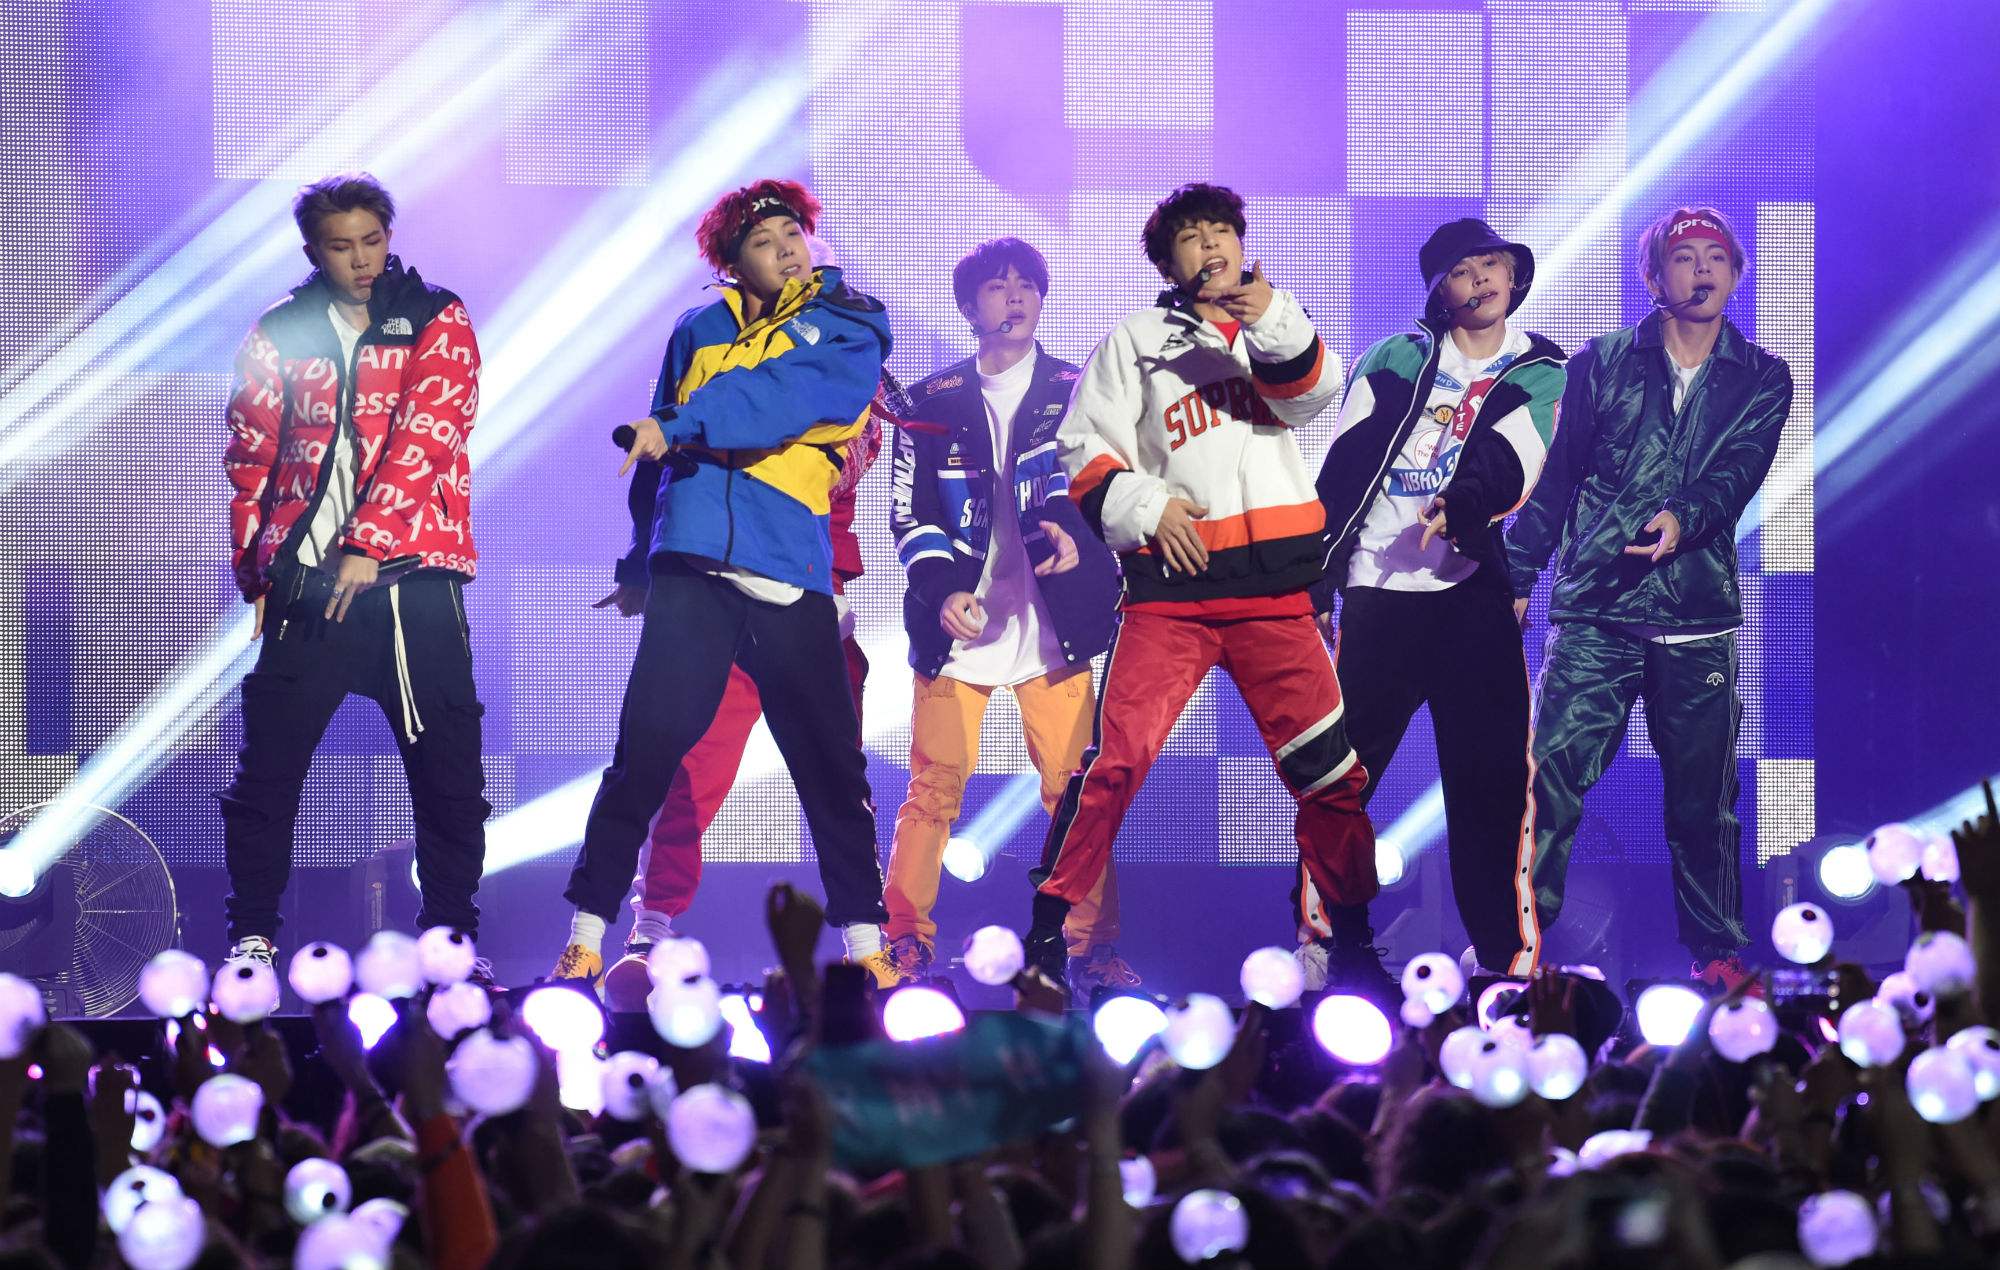 Arabs to be the next stop for BTS's Love Yourself: Speak Yourself tour